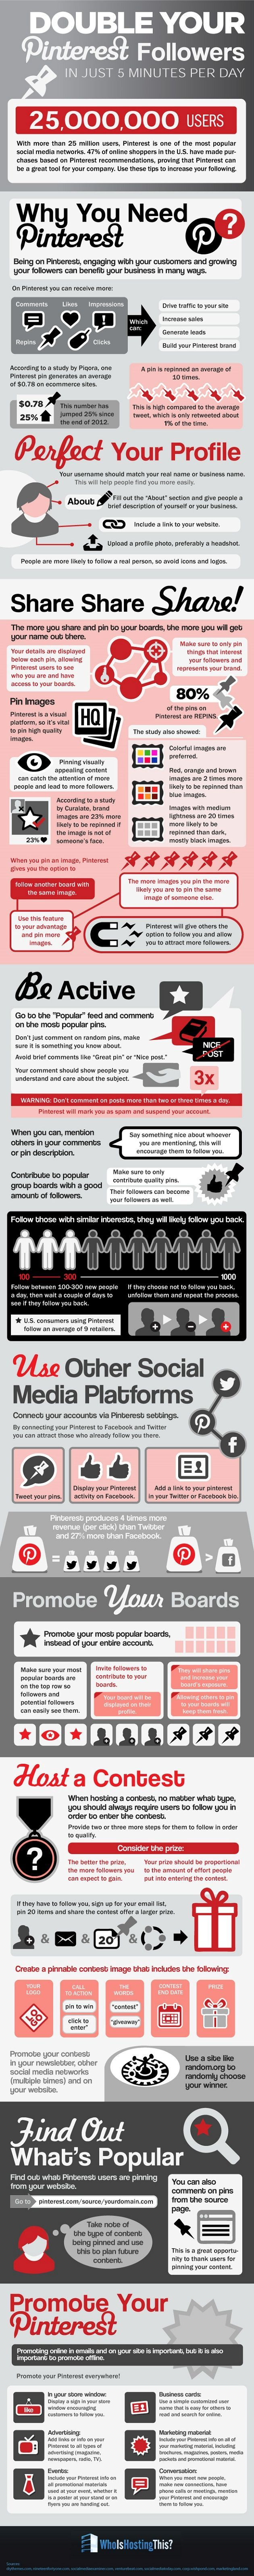 Social Media - Double Your Pinterest Followers in Just 5 Minutes per Day [Infographic] via @marketingprofs